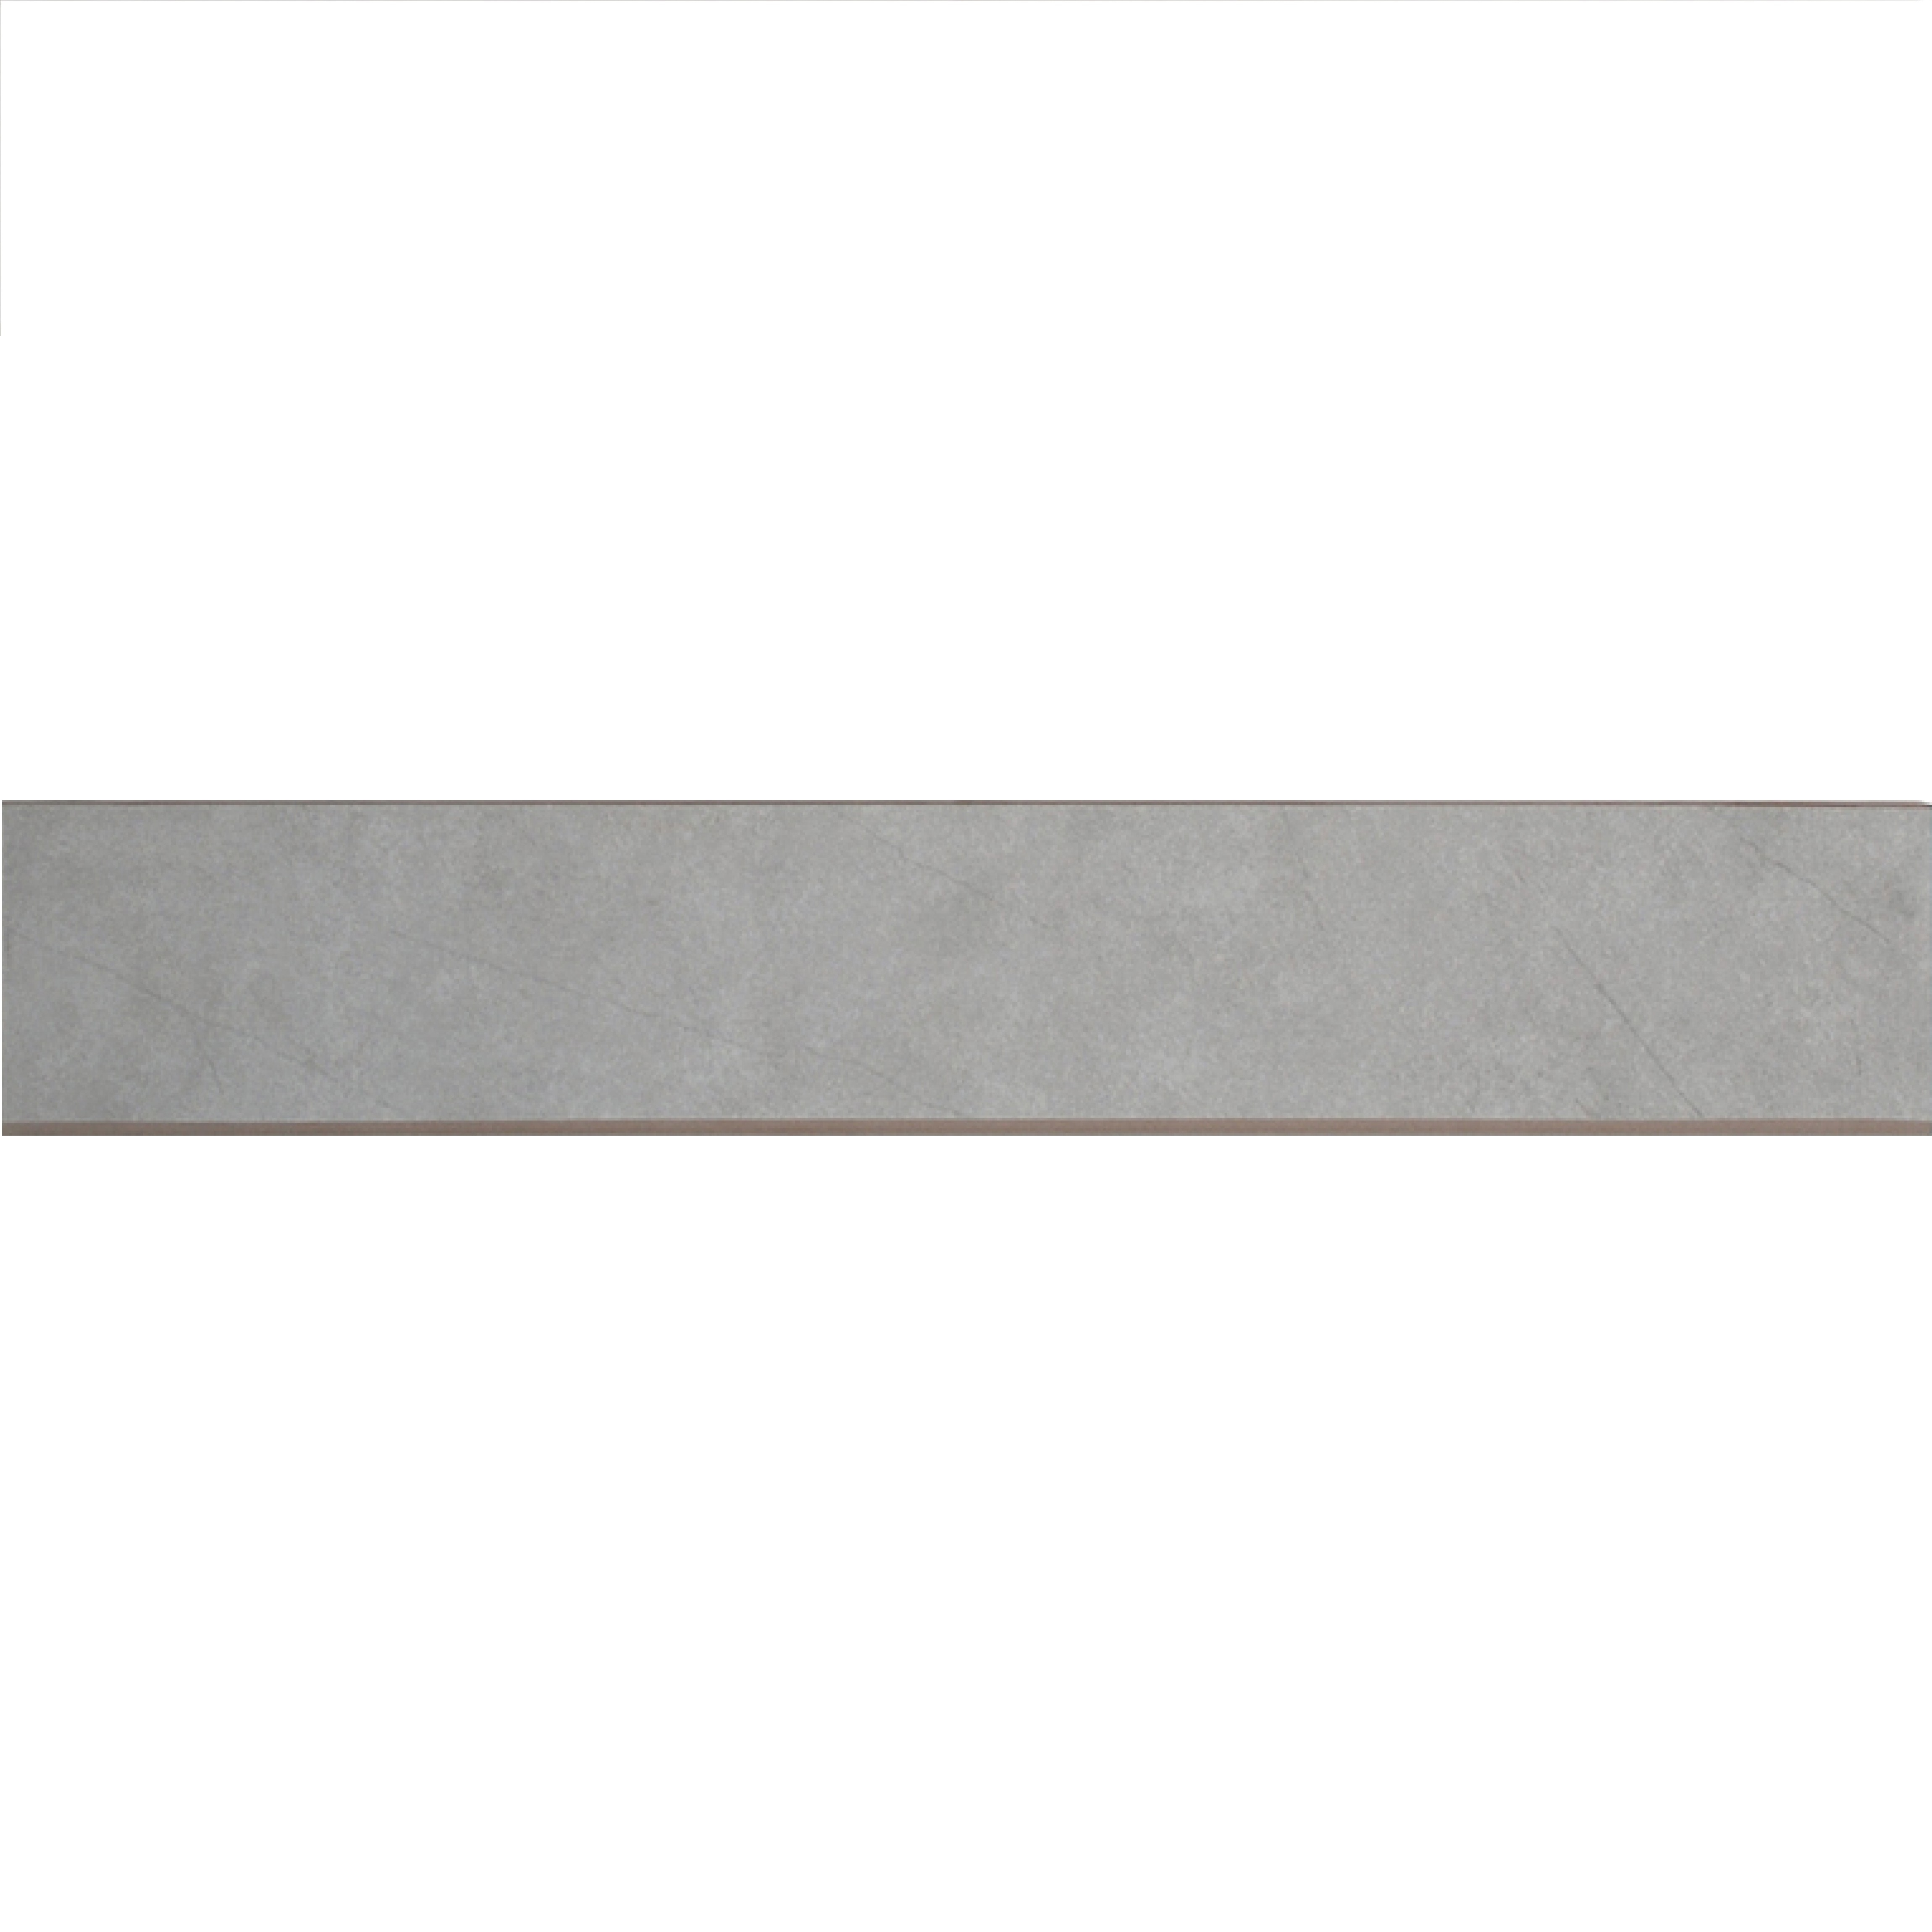 Arredo Klinker Quartz Grey 100x600 mm Sockel